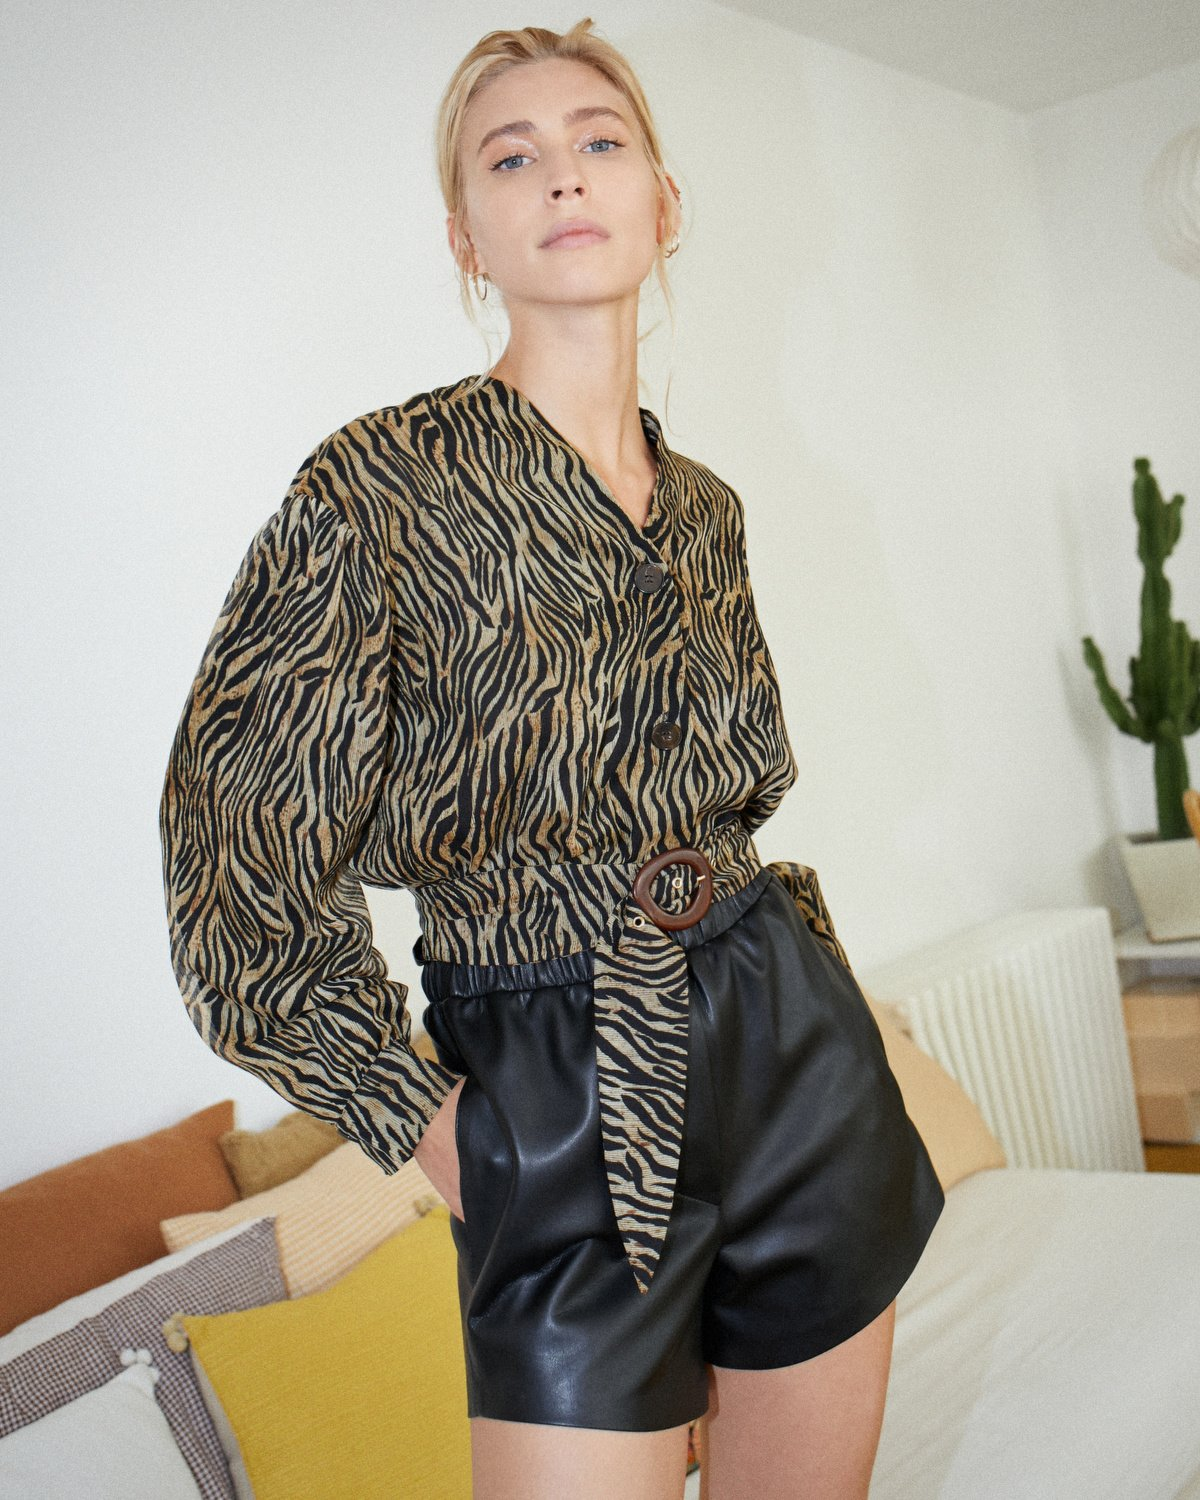 DASHA - Balloon sleeve shirt - Tiger print